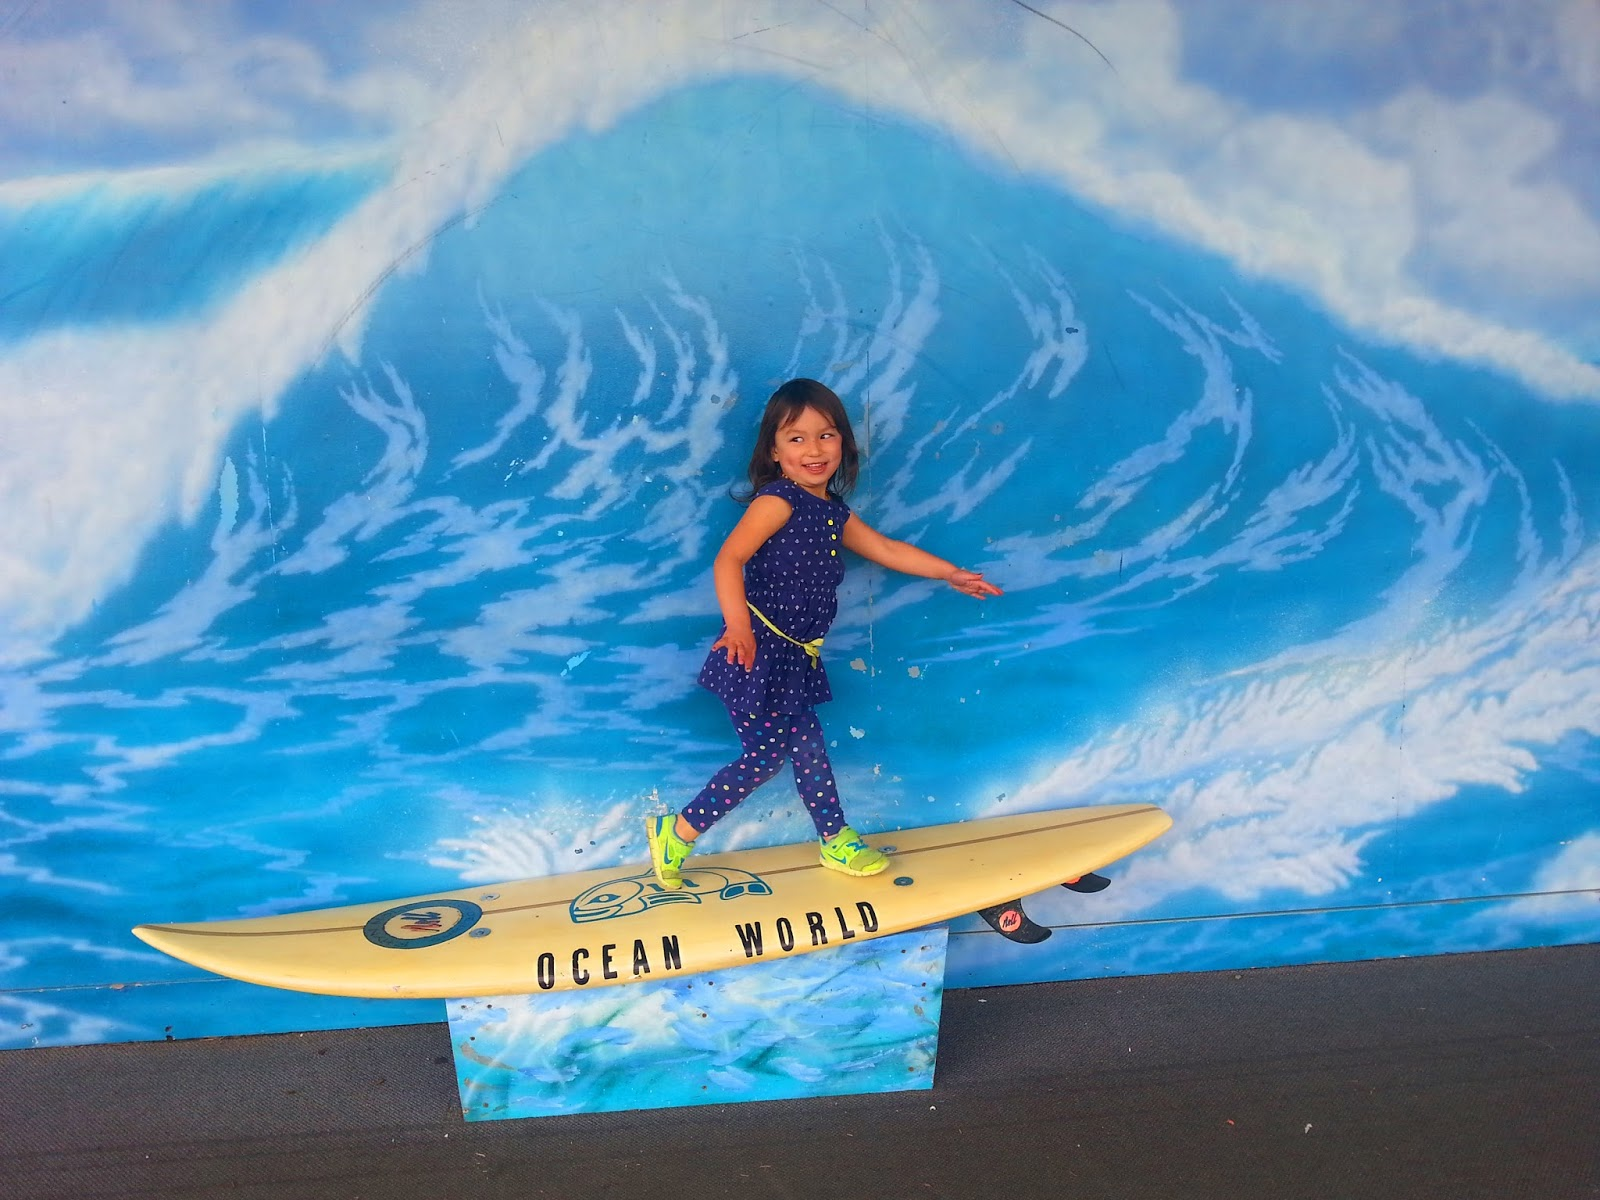 OCEAN WORLD - What to do in Southern Oregon - Things to do - Norhtern California - Camping - Day TRip - Kid-Friendly - Beaches